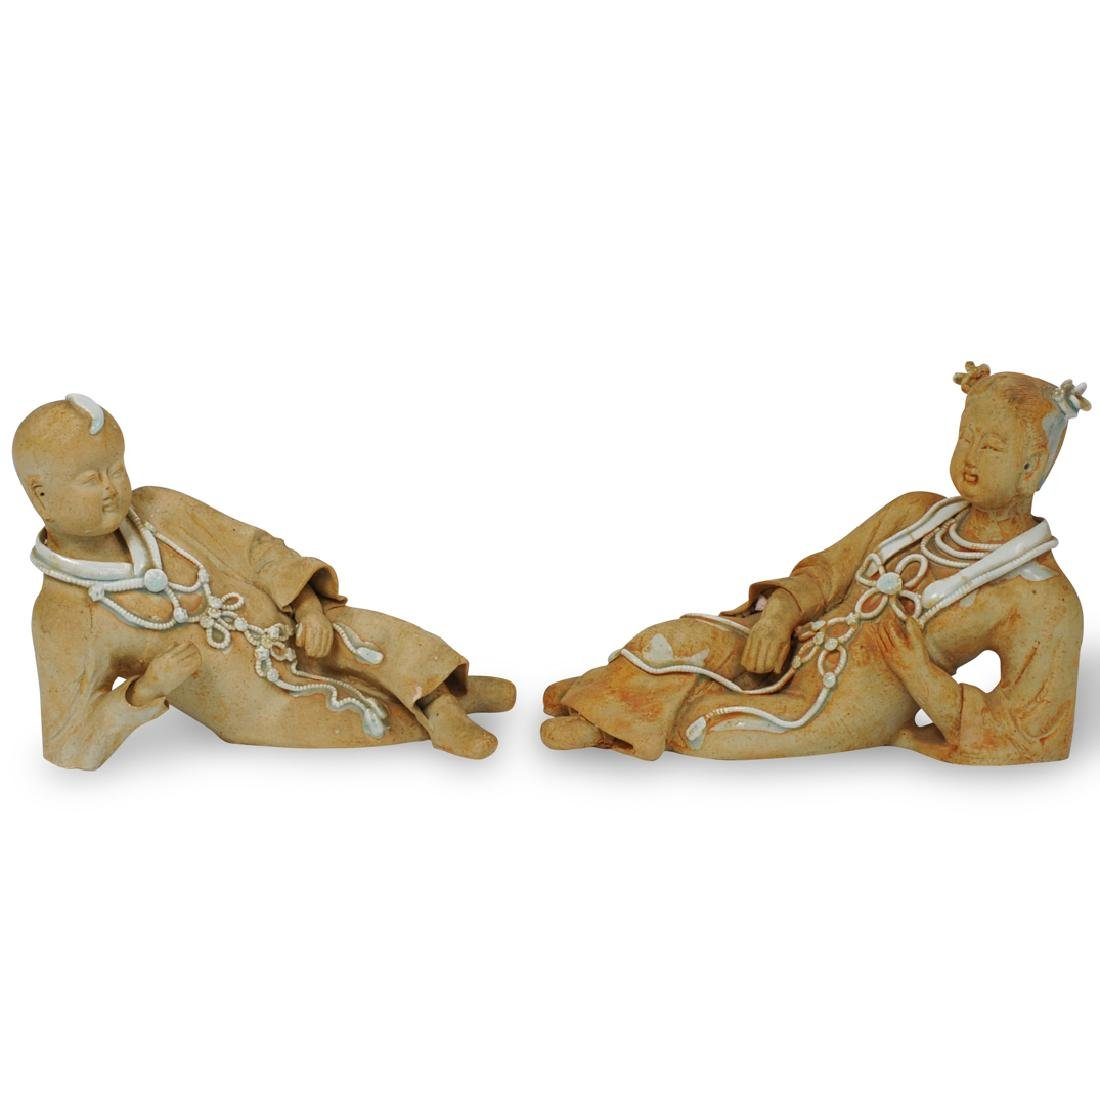 Pair of Chinese Reclining Figures